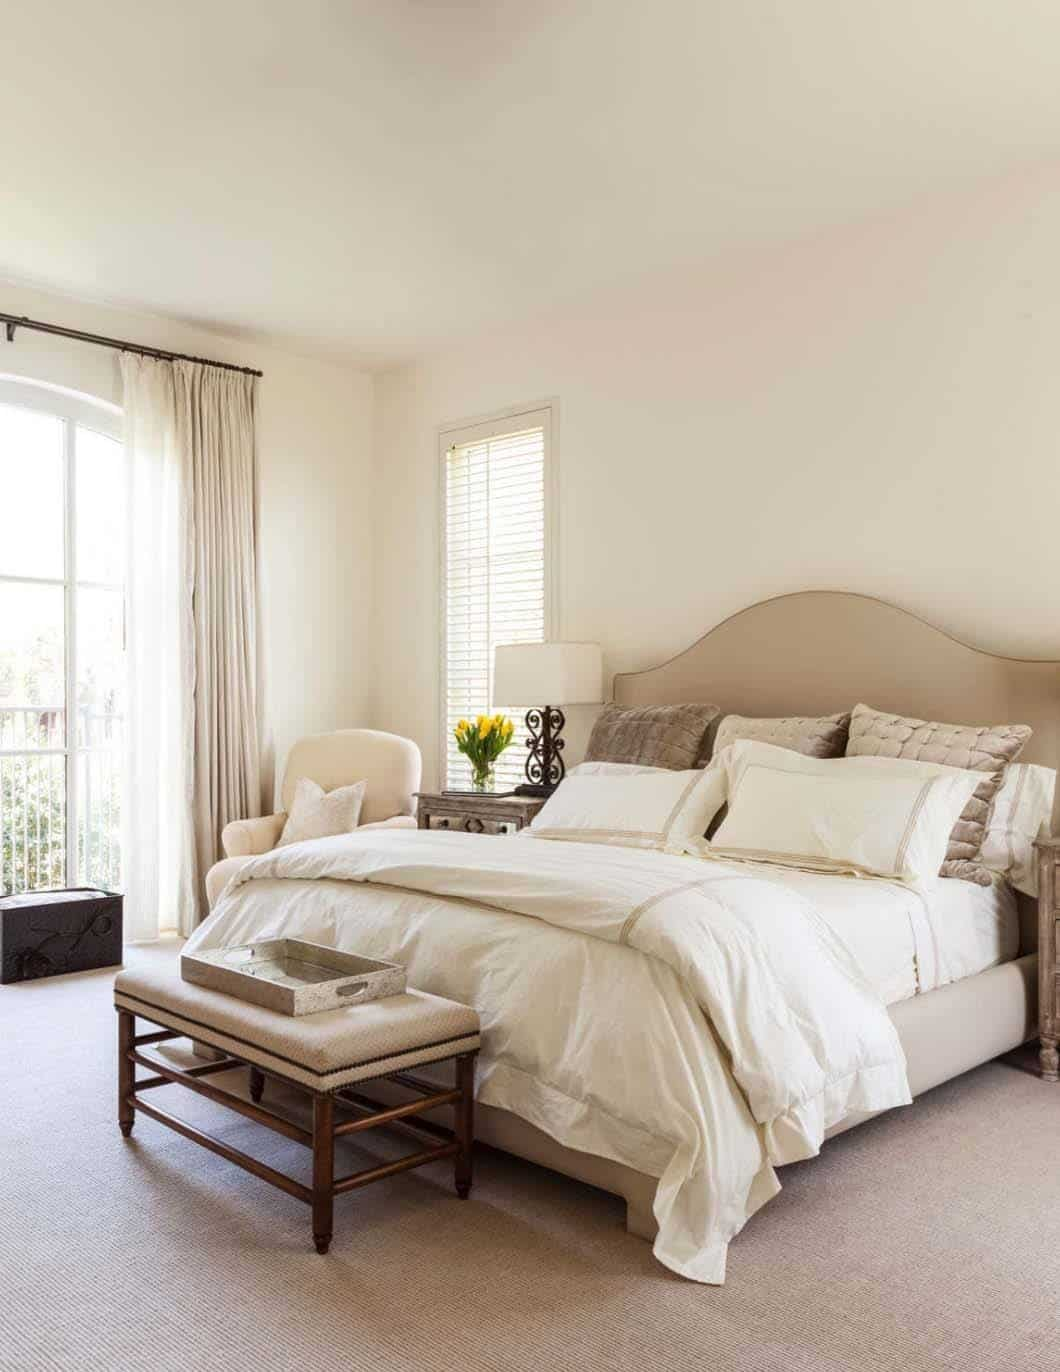 Bedroom Ideas Relaxing 35 43 Spectacular Neutral Bedroom Schemes For Relaxation